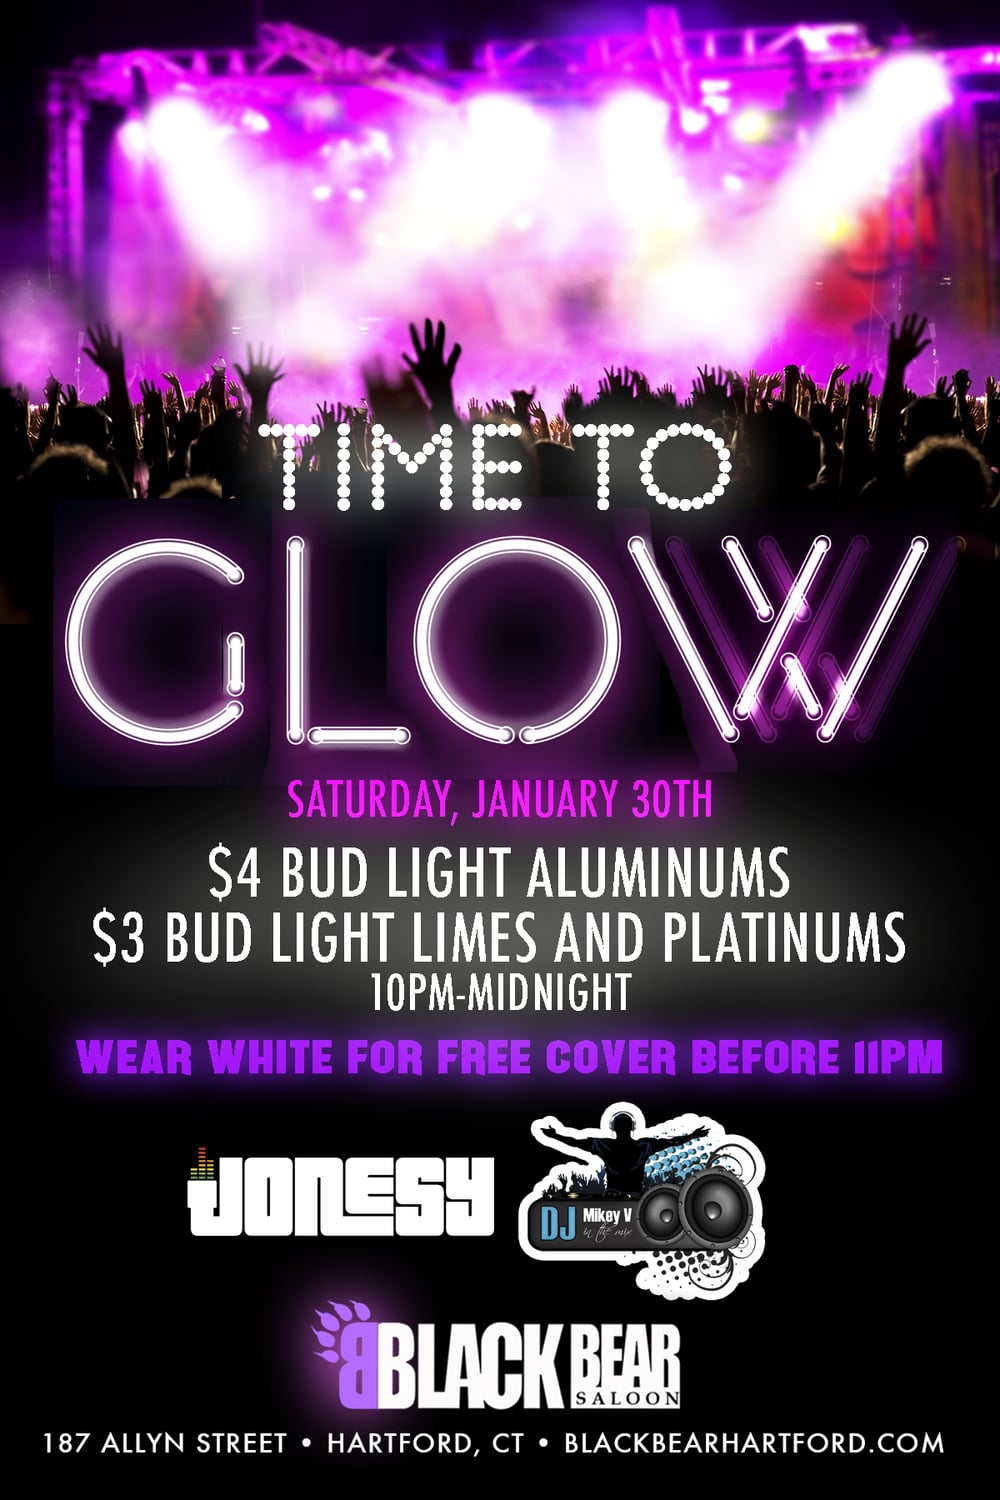 Saturday, January 30th join us at Black Bear in Hartford, CT for the monthly Glow Party!  Music by Mikey V & Jonesy starts at 9:30pm.  Wear white for free cover before 11pm.  $4 Bud Light Aluminums & $3 Bud Light Lime & Platinums 10pm- midnight!  Meet me there!